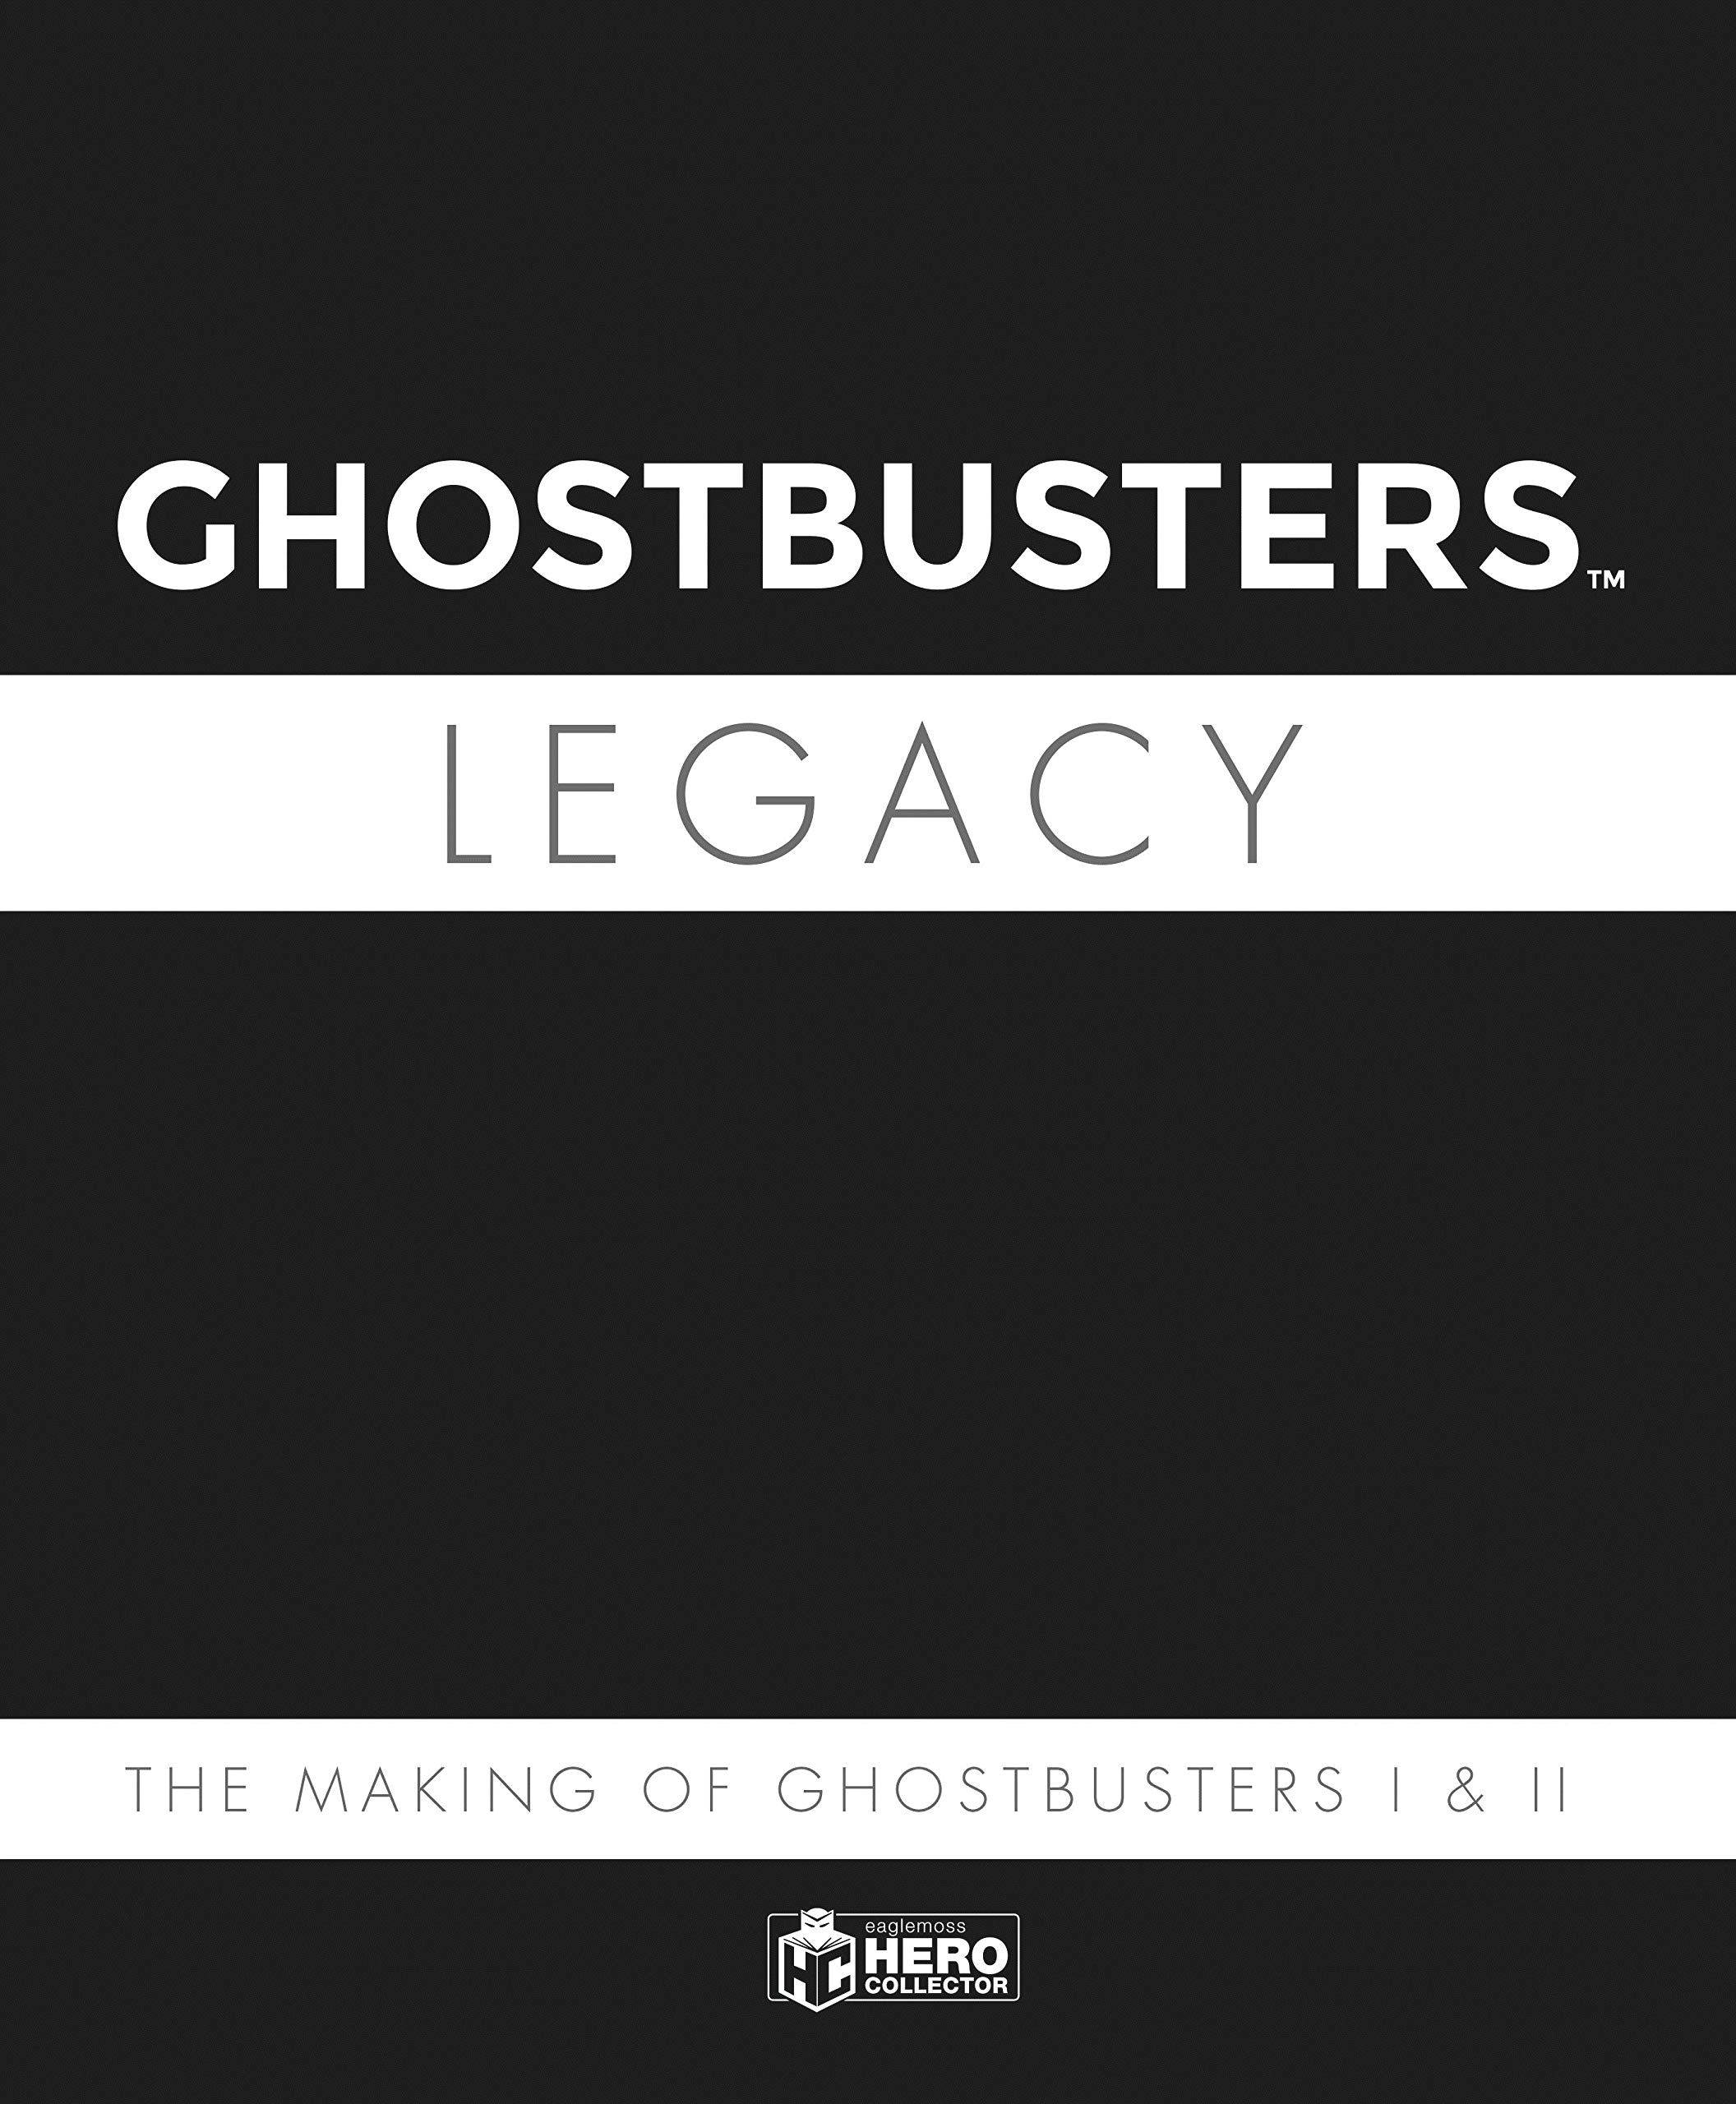 GHOSTBUSTERS LEGACY HC MAKING GHOSTBUSTERS I & II